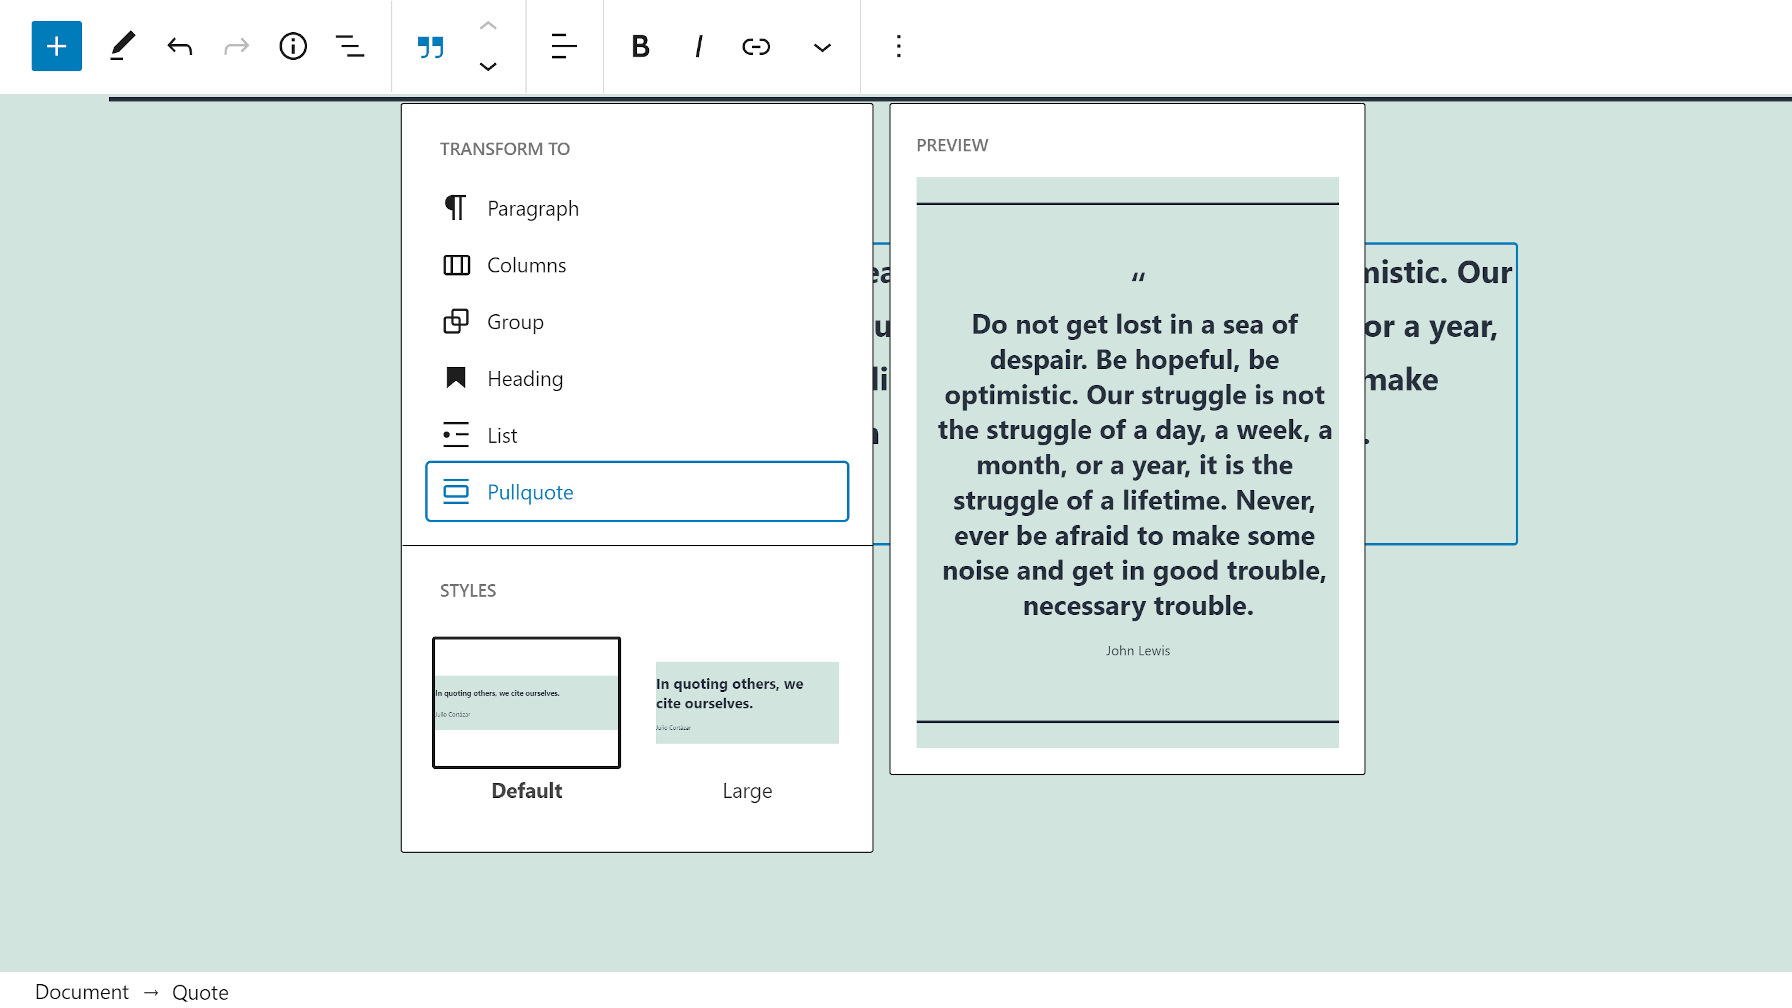 gutenberg-9-7-improves-user-experience-updates-reusable-blocks-and-brings-page-templates-to-fse-themes Gutenberg 9.7 Improves User Experience, Updates Reusable Blocks, and Brings Page Templates to FSE Themes